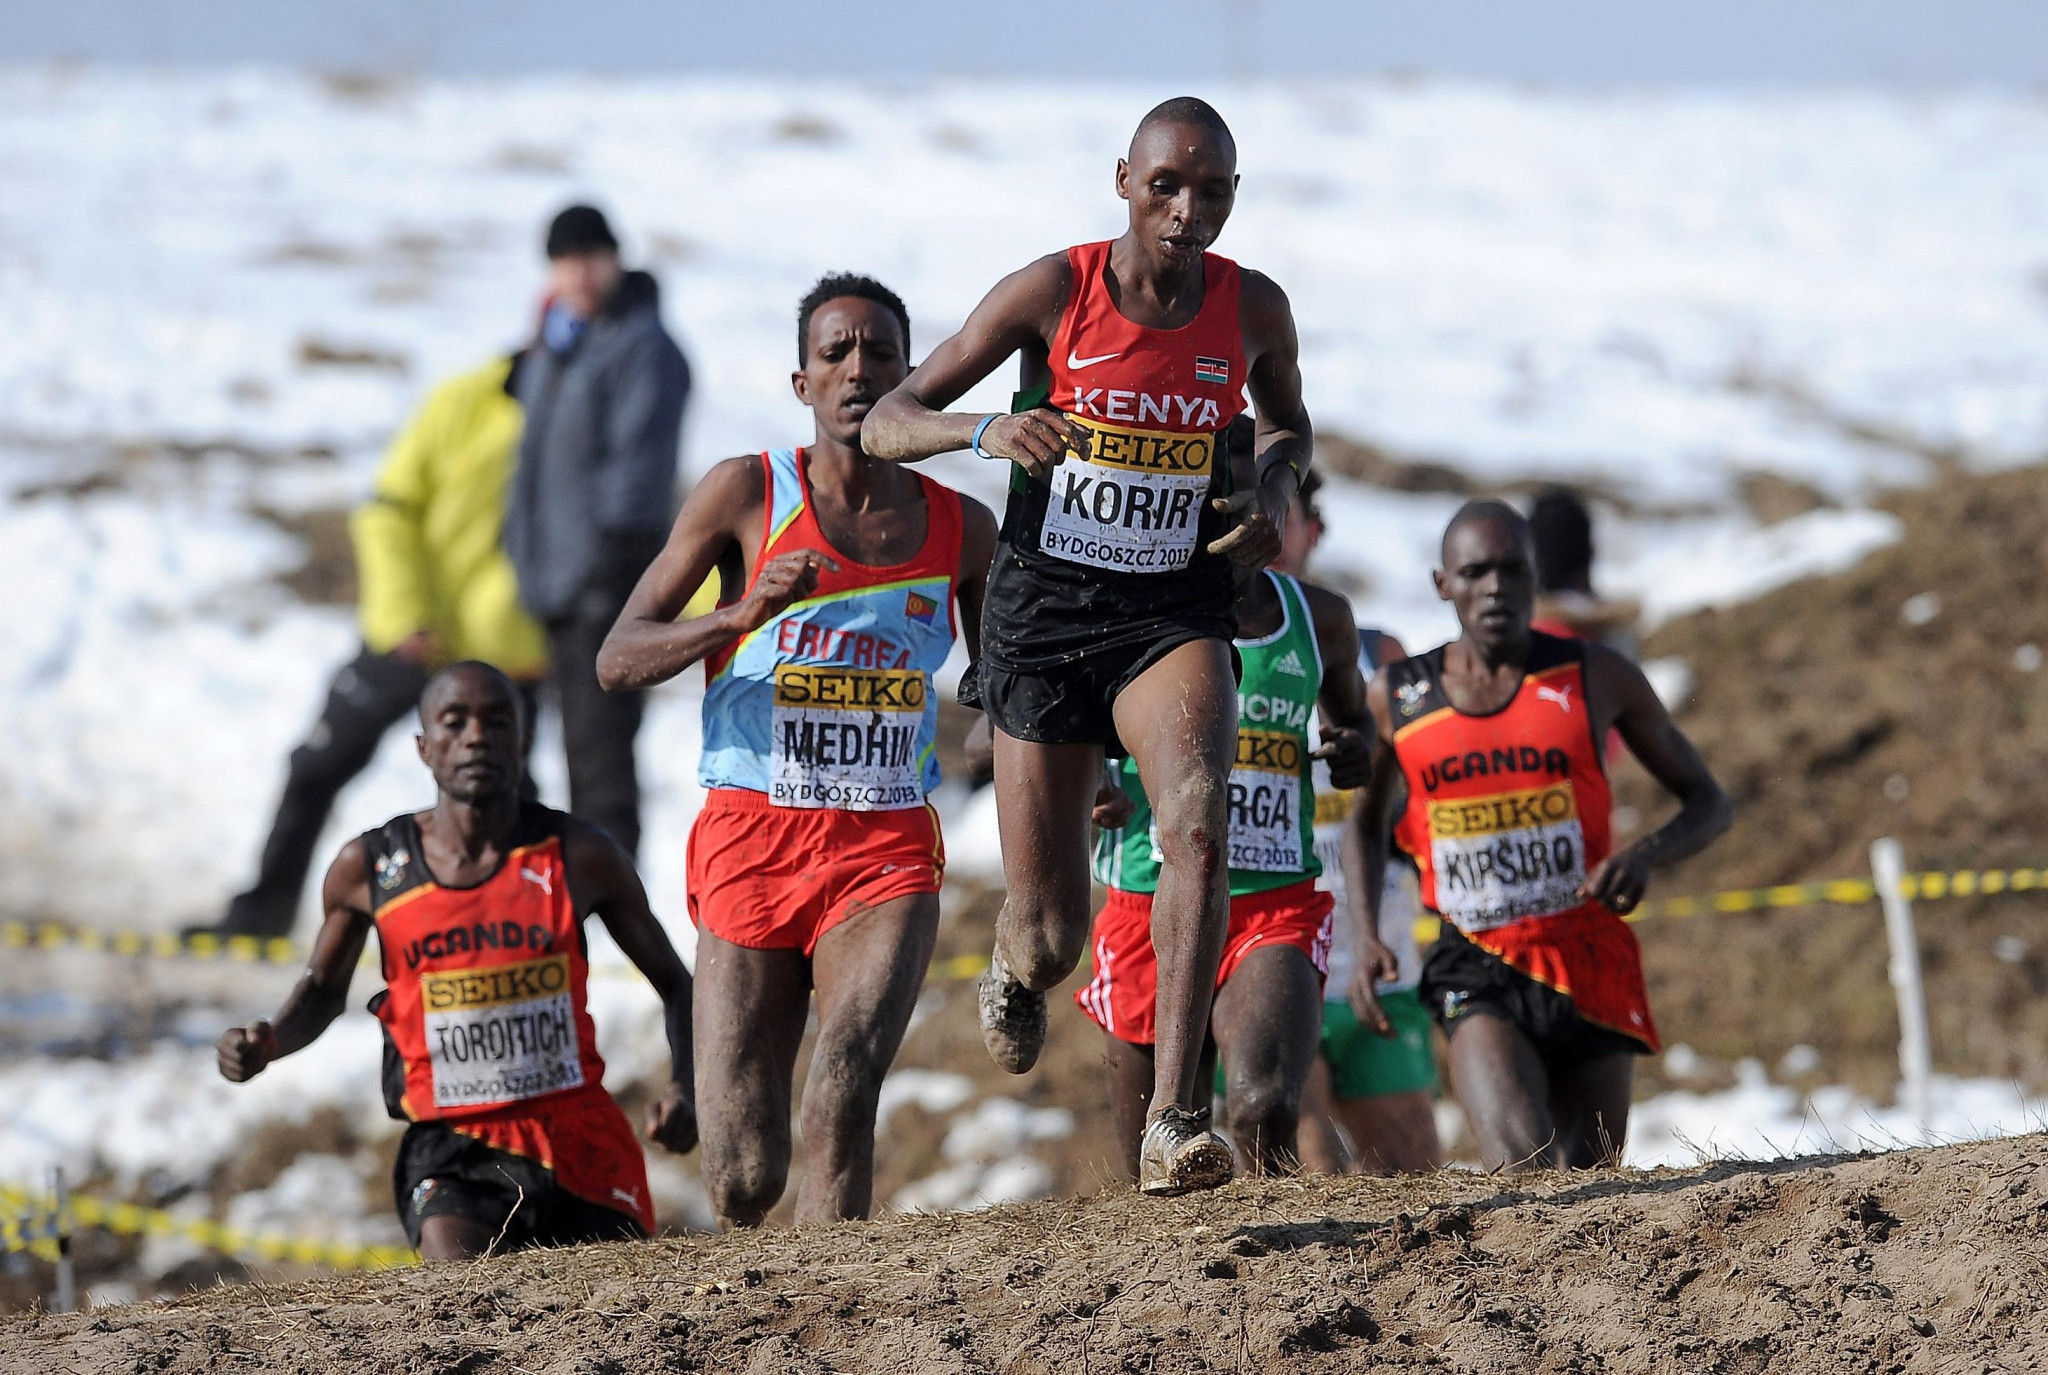 The IAAF World Cross Country Championships is due to take place in Aarhus on March 30  ©IAAF